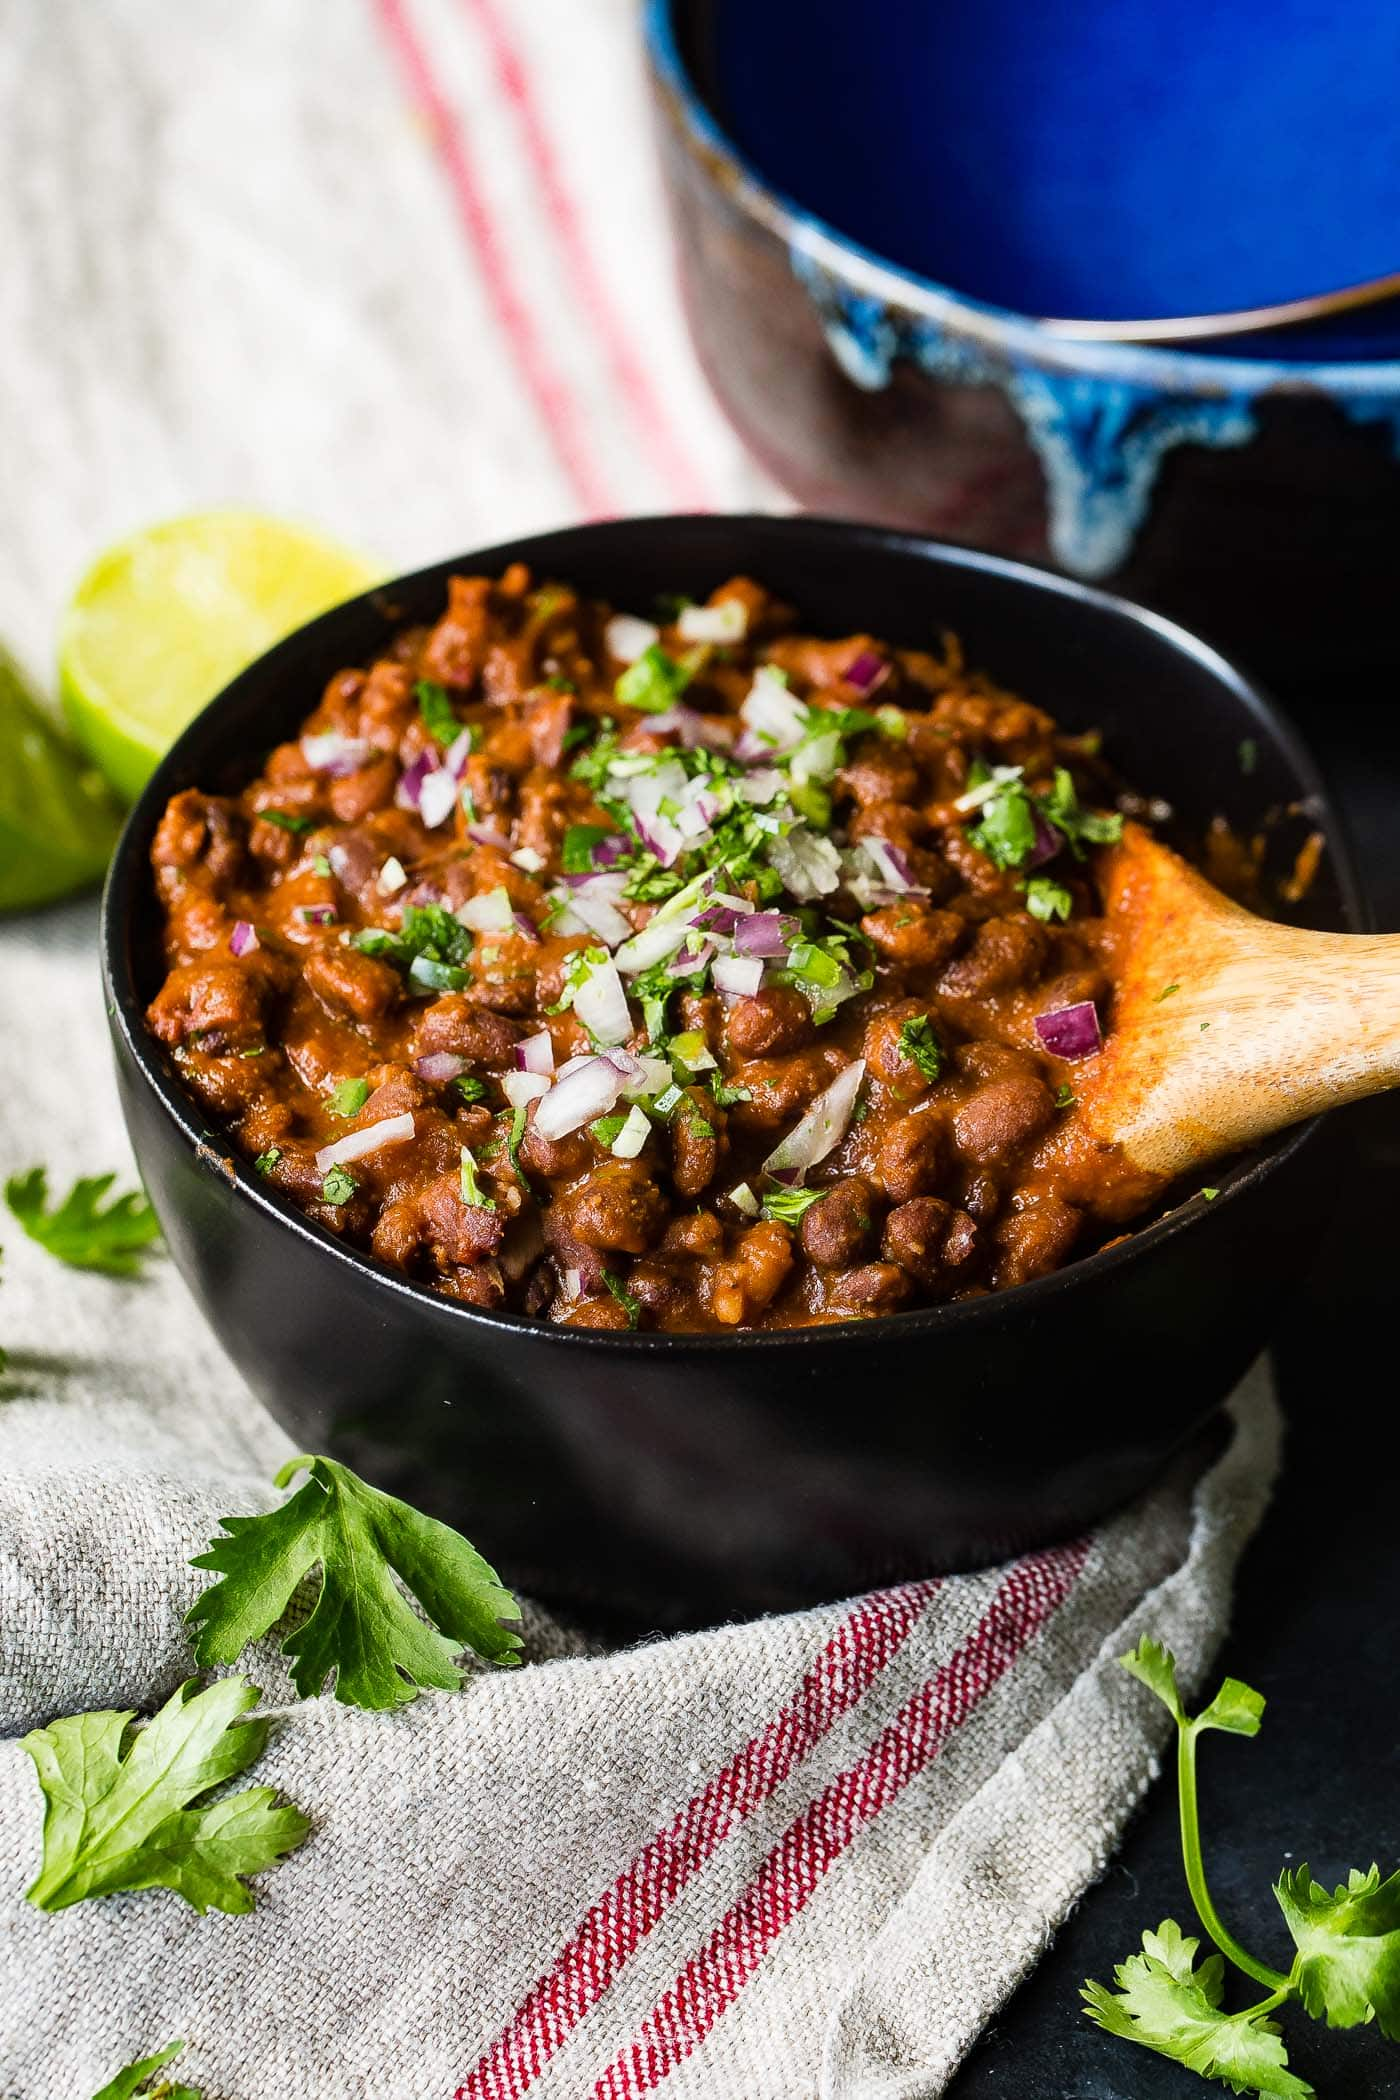 A photo of a bowl of Mexican black beans stopped with diced red onion and chopped fresh cilantro being scooped with a wooden spoon.